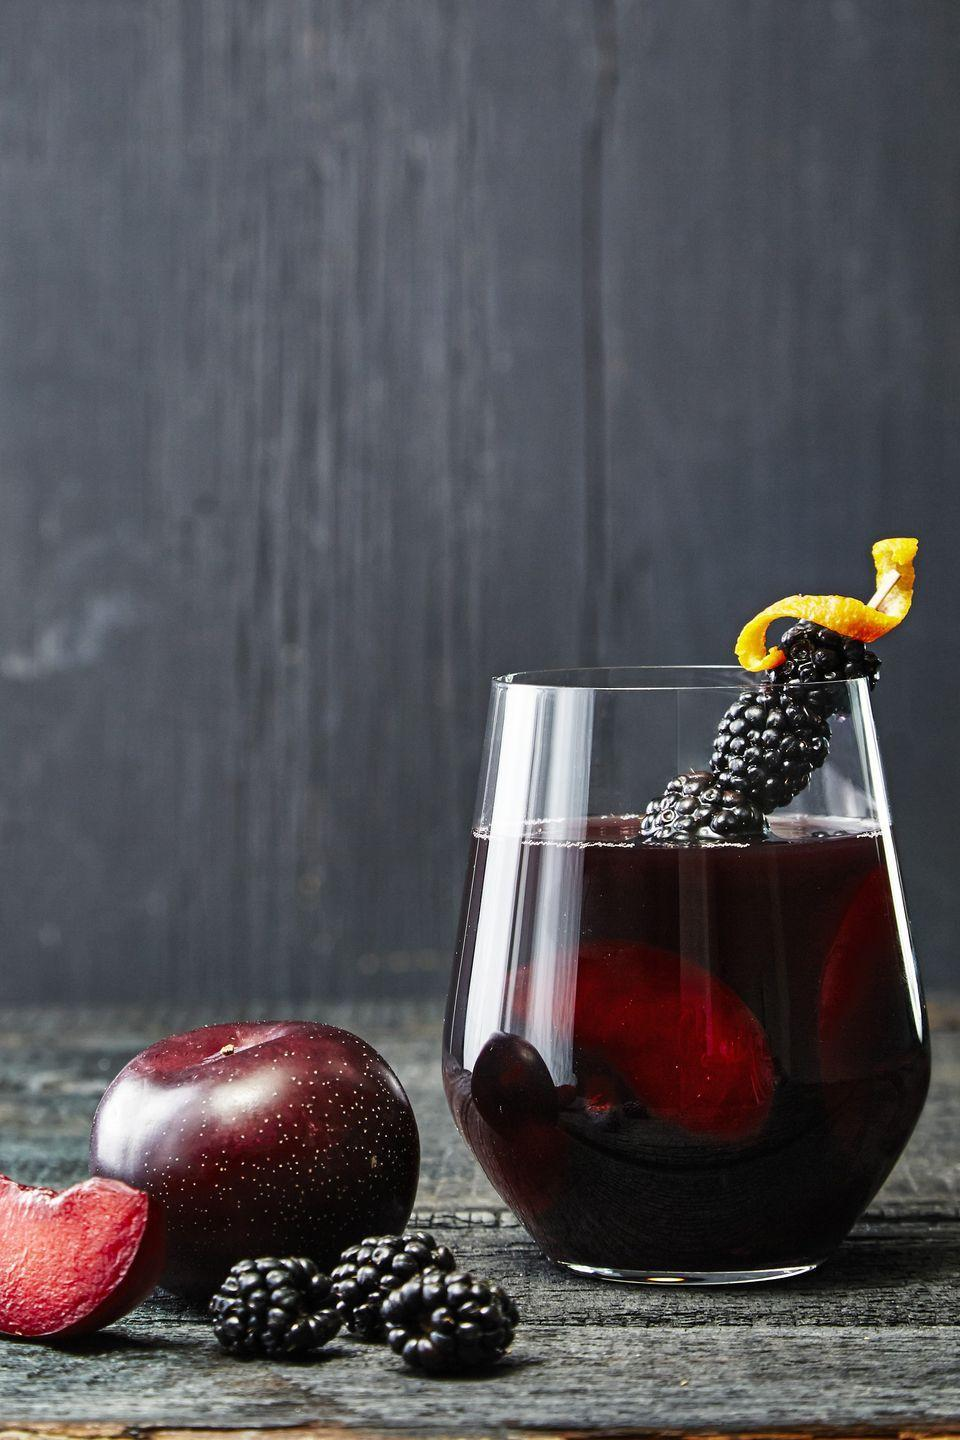 "<p>This bewitching brew works well with any dark, sweet juice (Pomegranate is our favorite!).</p><p><a href=""https://www.goodhousekeeping.com/food-recipes/a40524/black-magic-punch-recipe/"" rel=""nofollow noopener"" target=""_blank"" data-ylk=""slk:Get the recipe for Black Magic Punch »"" class=""link rapid-noclick-resp""><em>Get the recipe for Black Magic Punch »</em></a></p>"